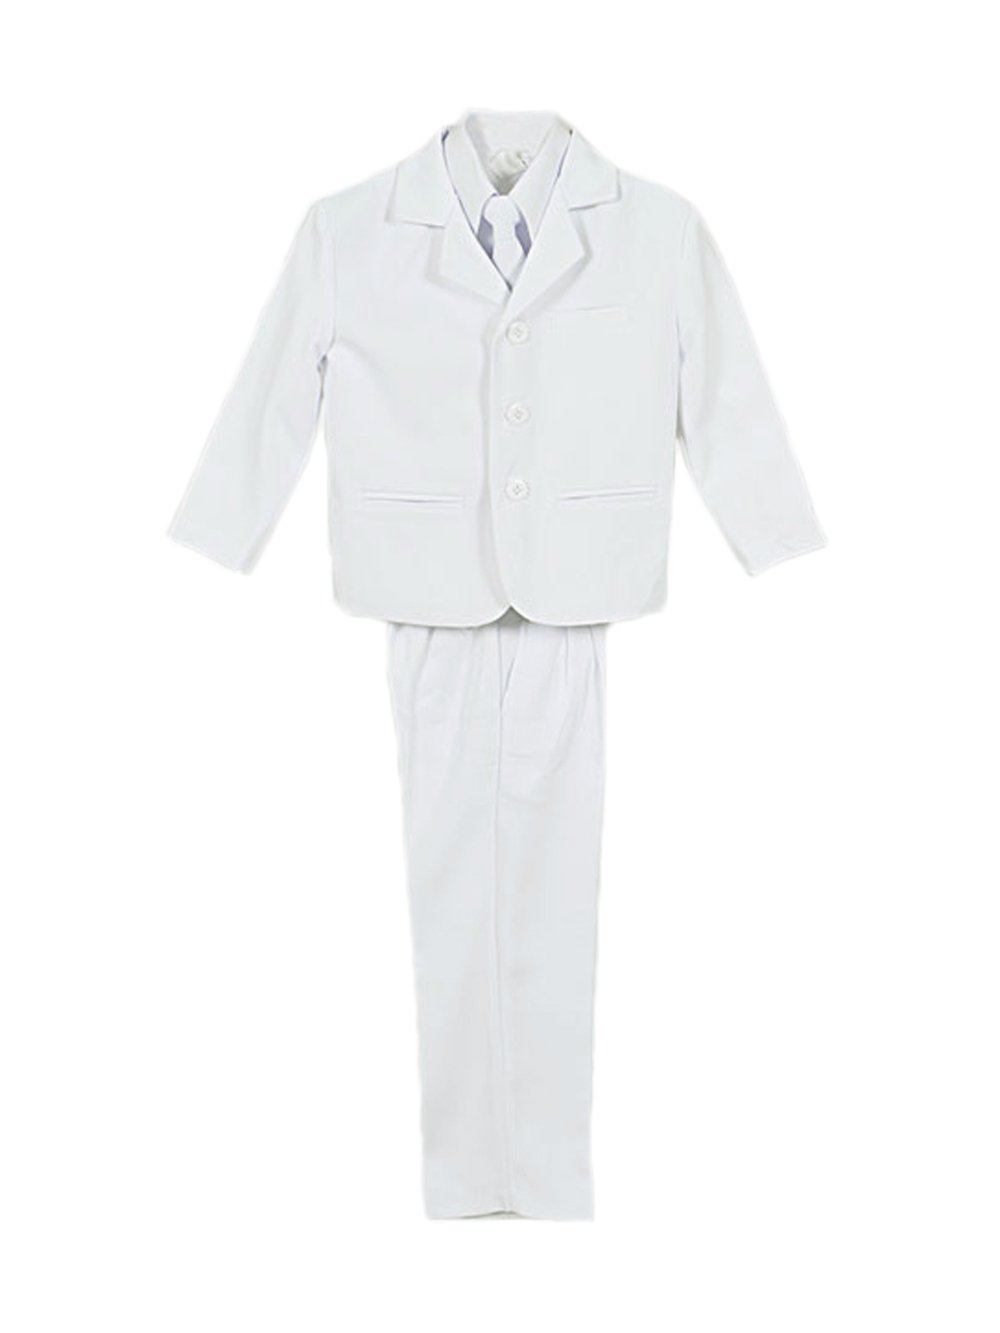 Kaifer ''Twill Formal'' 5-Piece Suit - white, 18